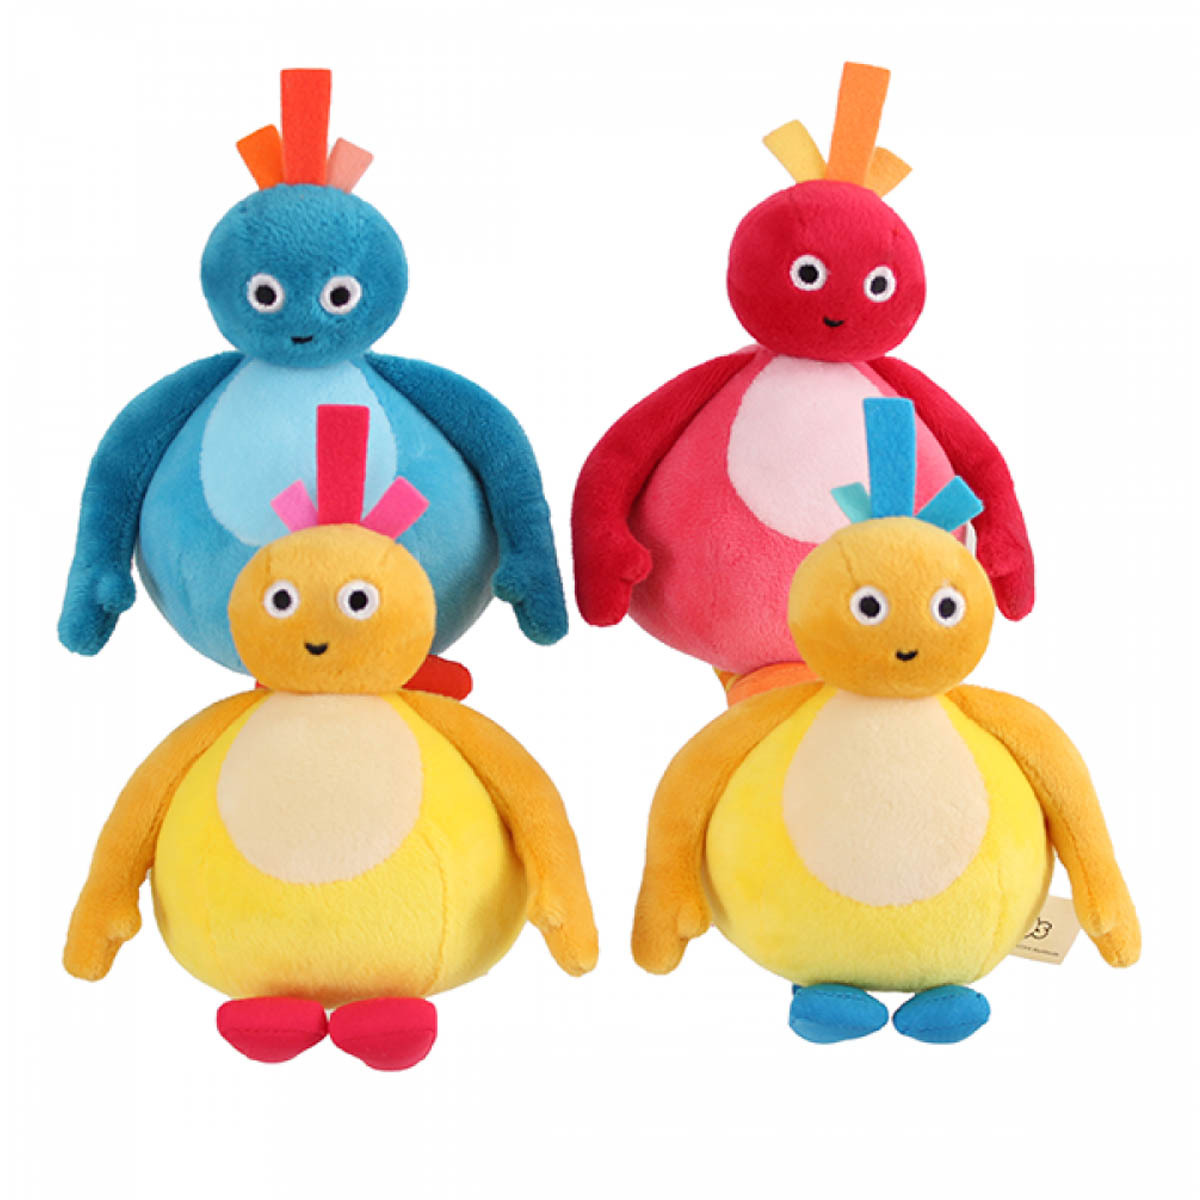 TWIRLYWOOS-CUDDLY-SOFT-TEXTURED-FABRIC-PLUSH-TOY-12cm-From-10-months-NEW thumbnail 4